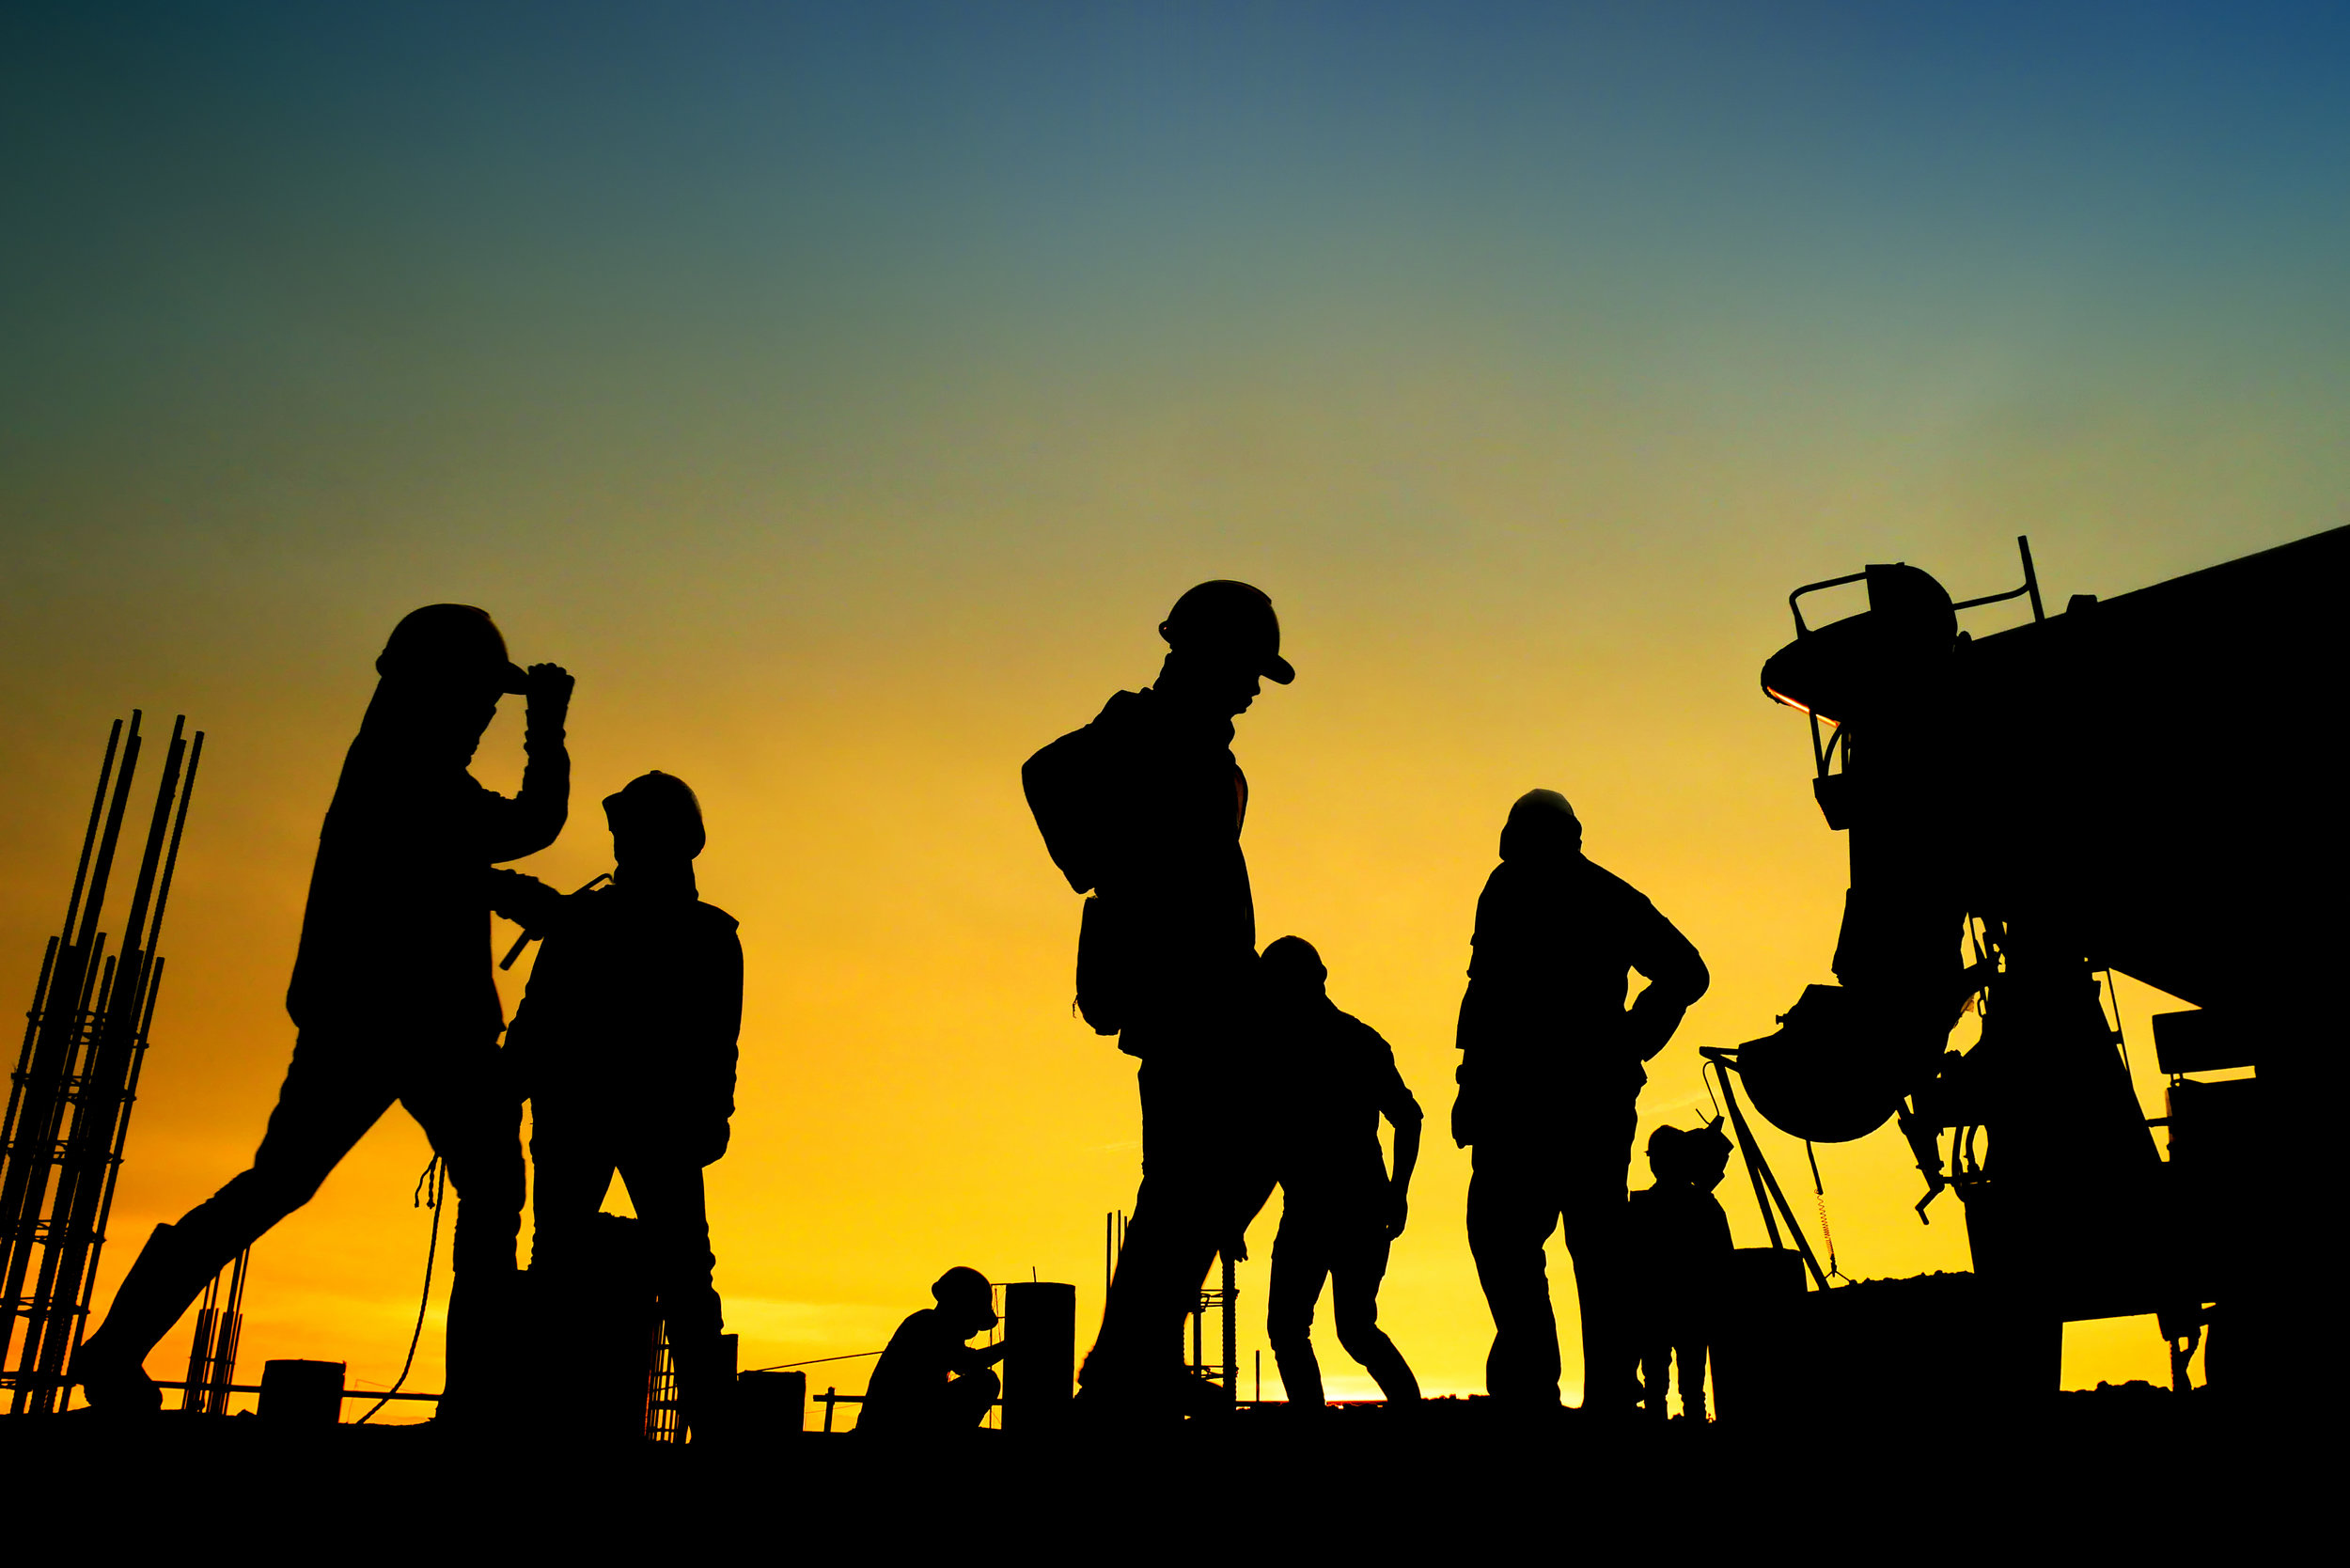 Construction Workers at Sunset.jpg